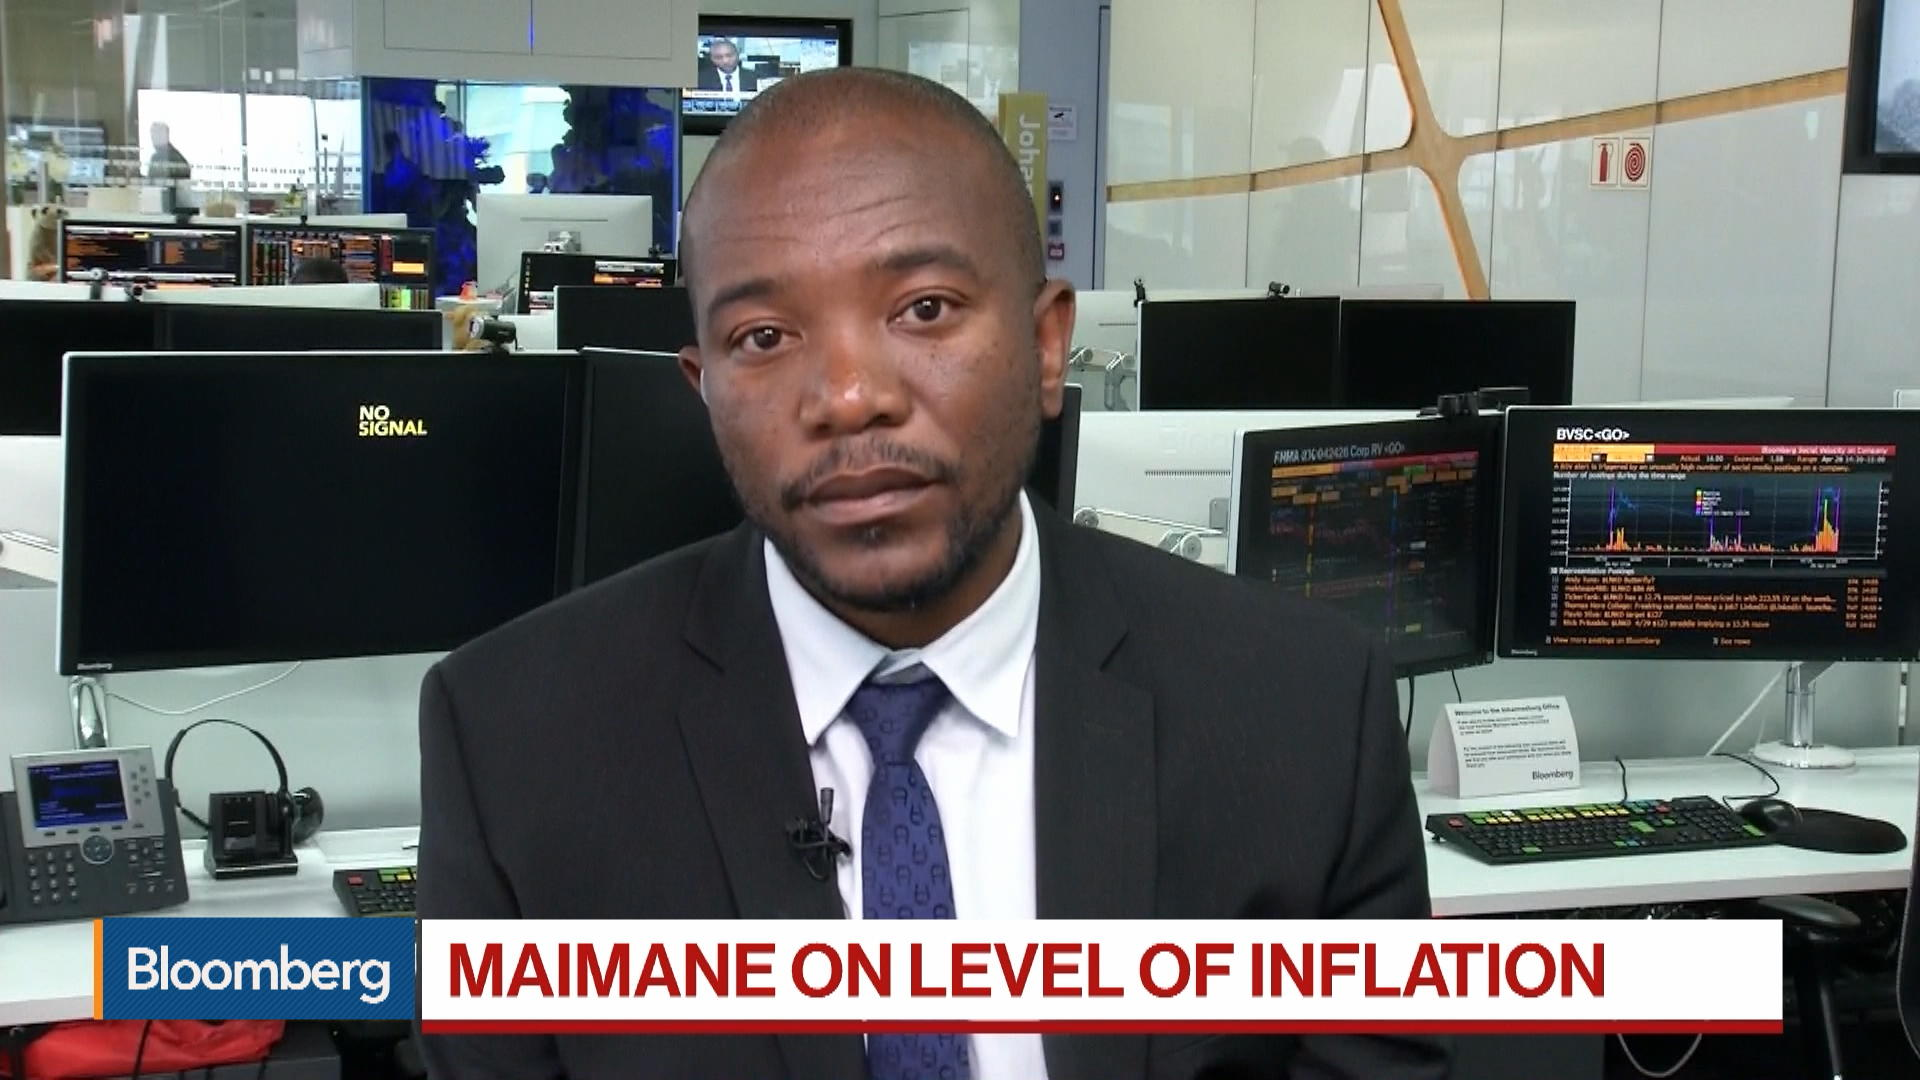 S. Africa's Democratic Alliance Leader on Election, Blackouts, Debt Ratio, Inflation